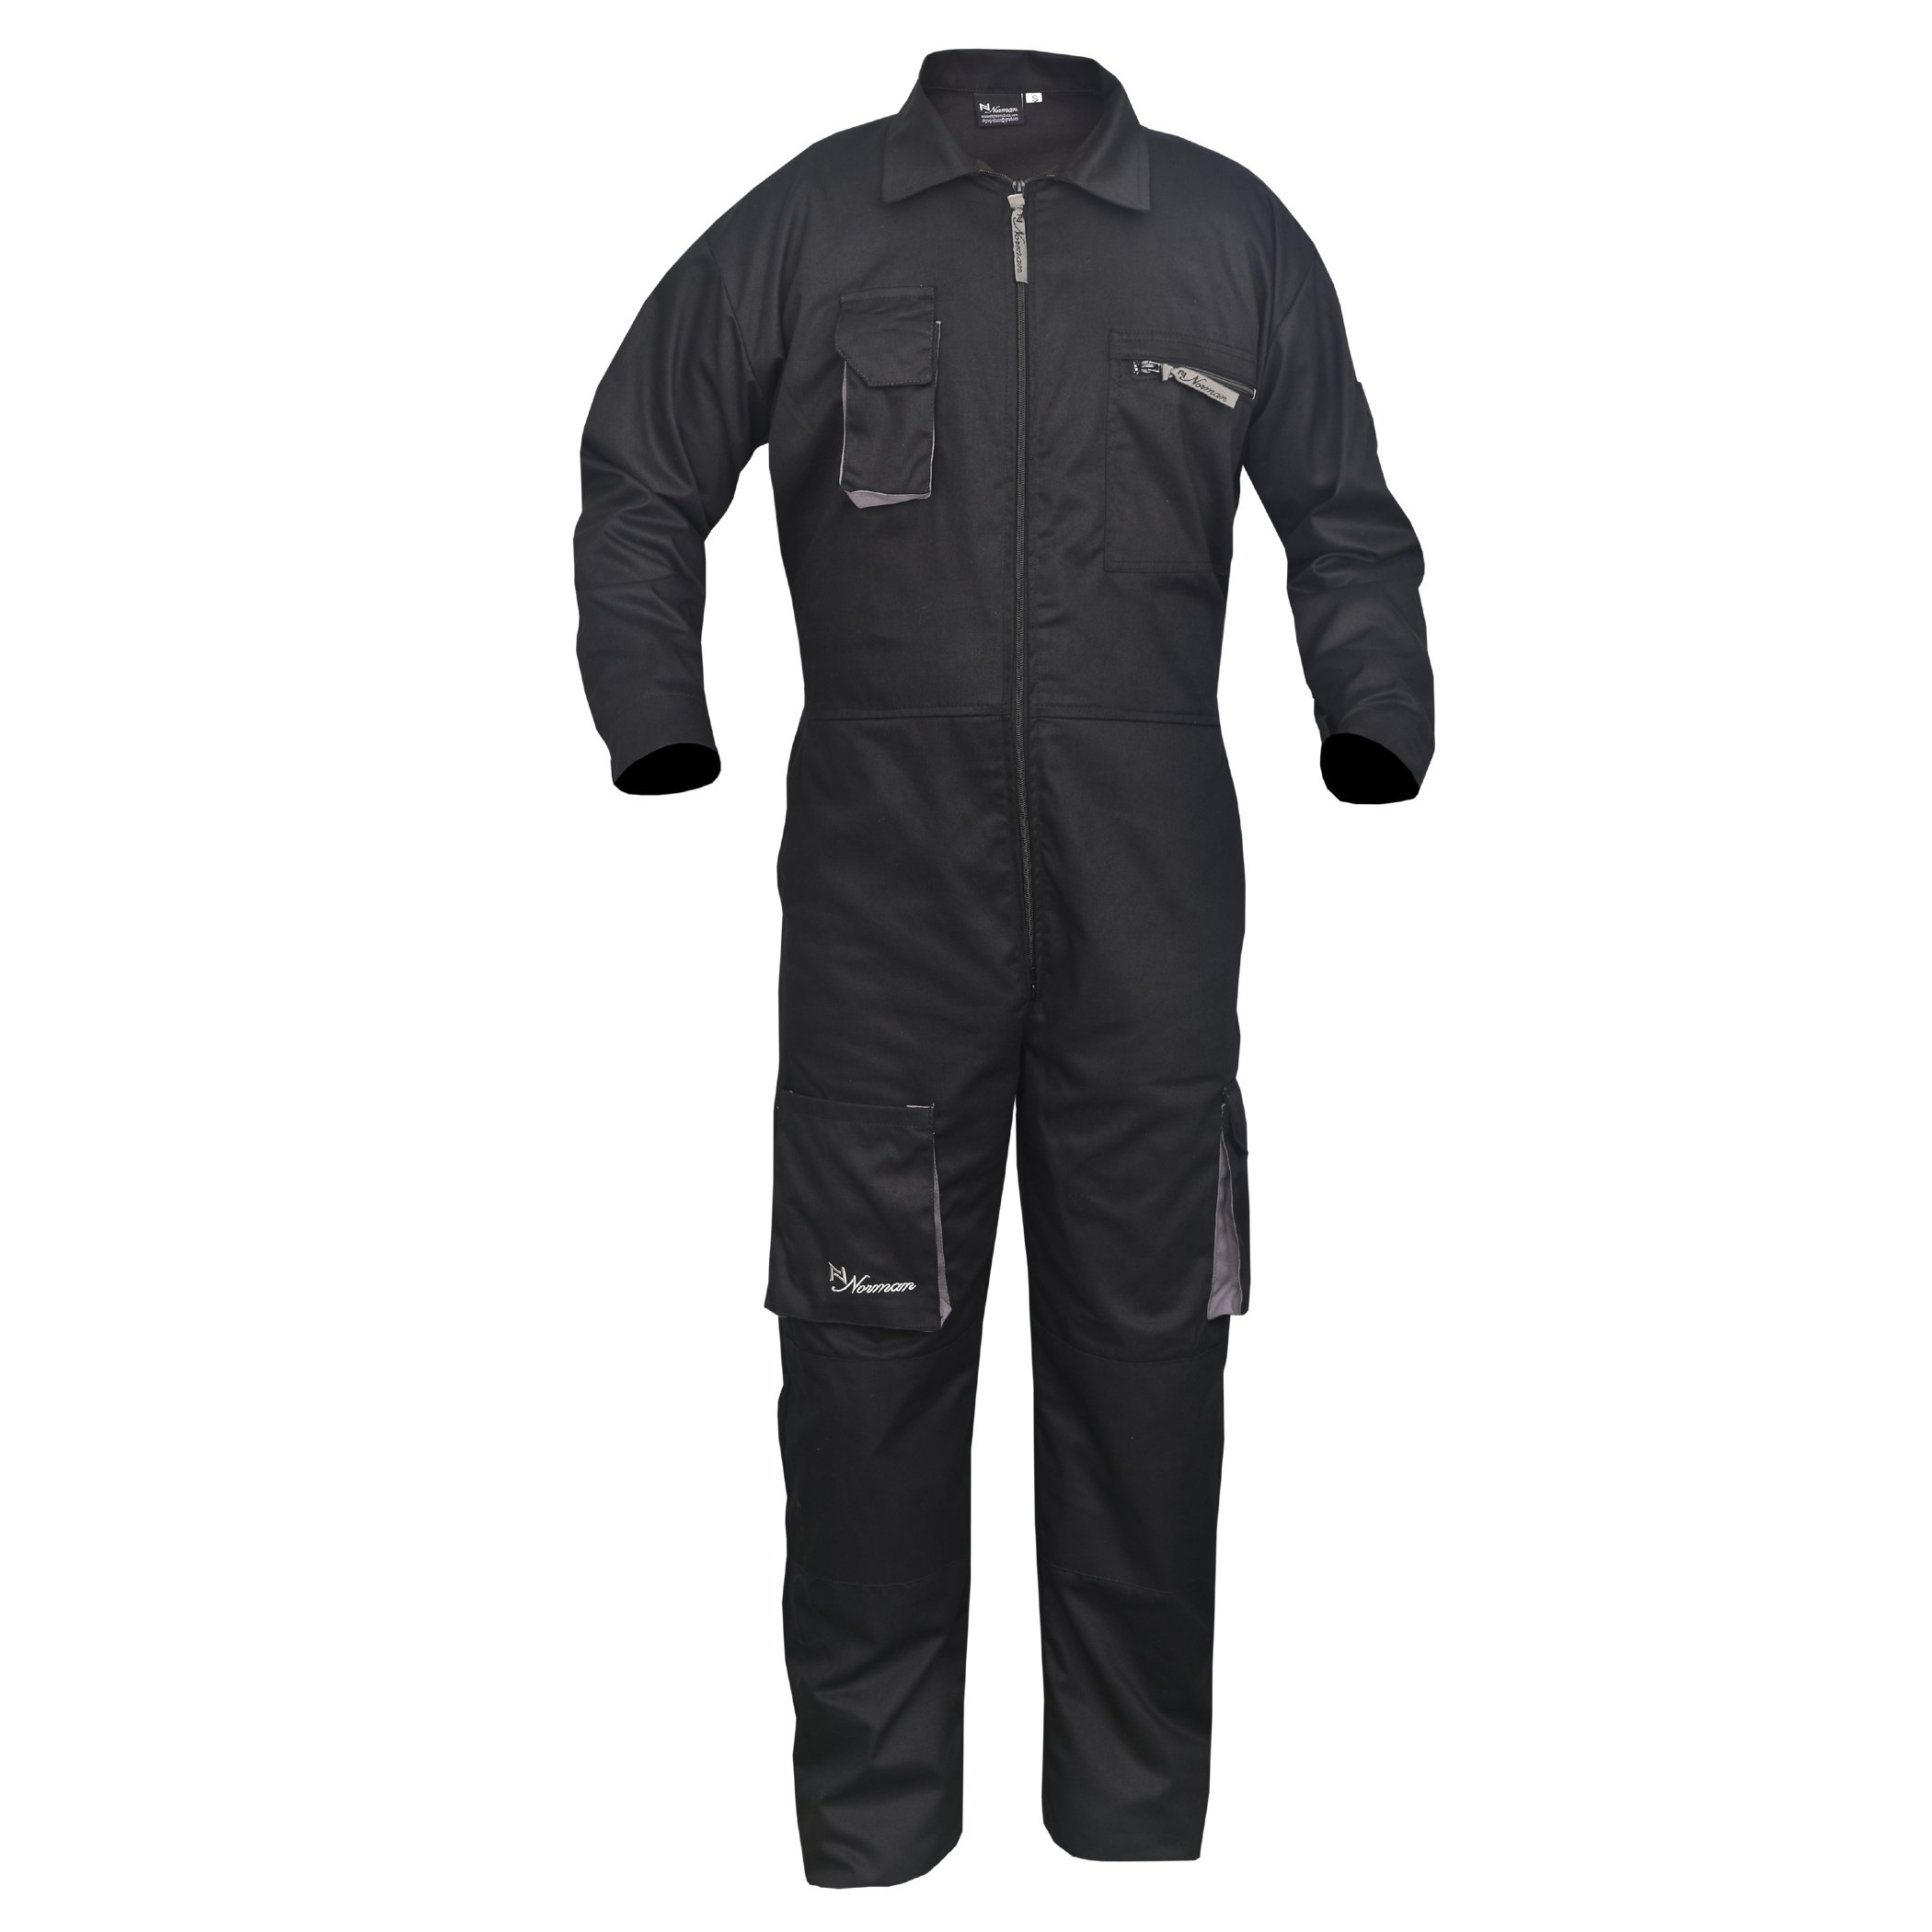 Black Work Wear Men's Overalls Boiler Suit Coveralls Mechanics Boilersuit Protective (3XL)